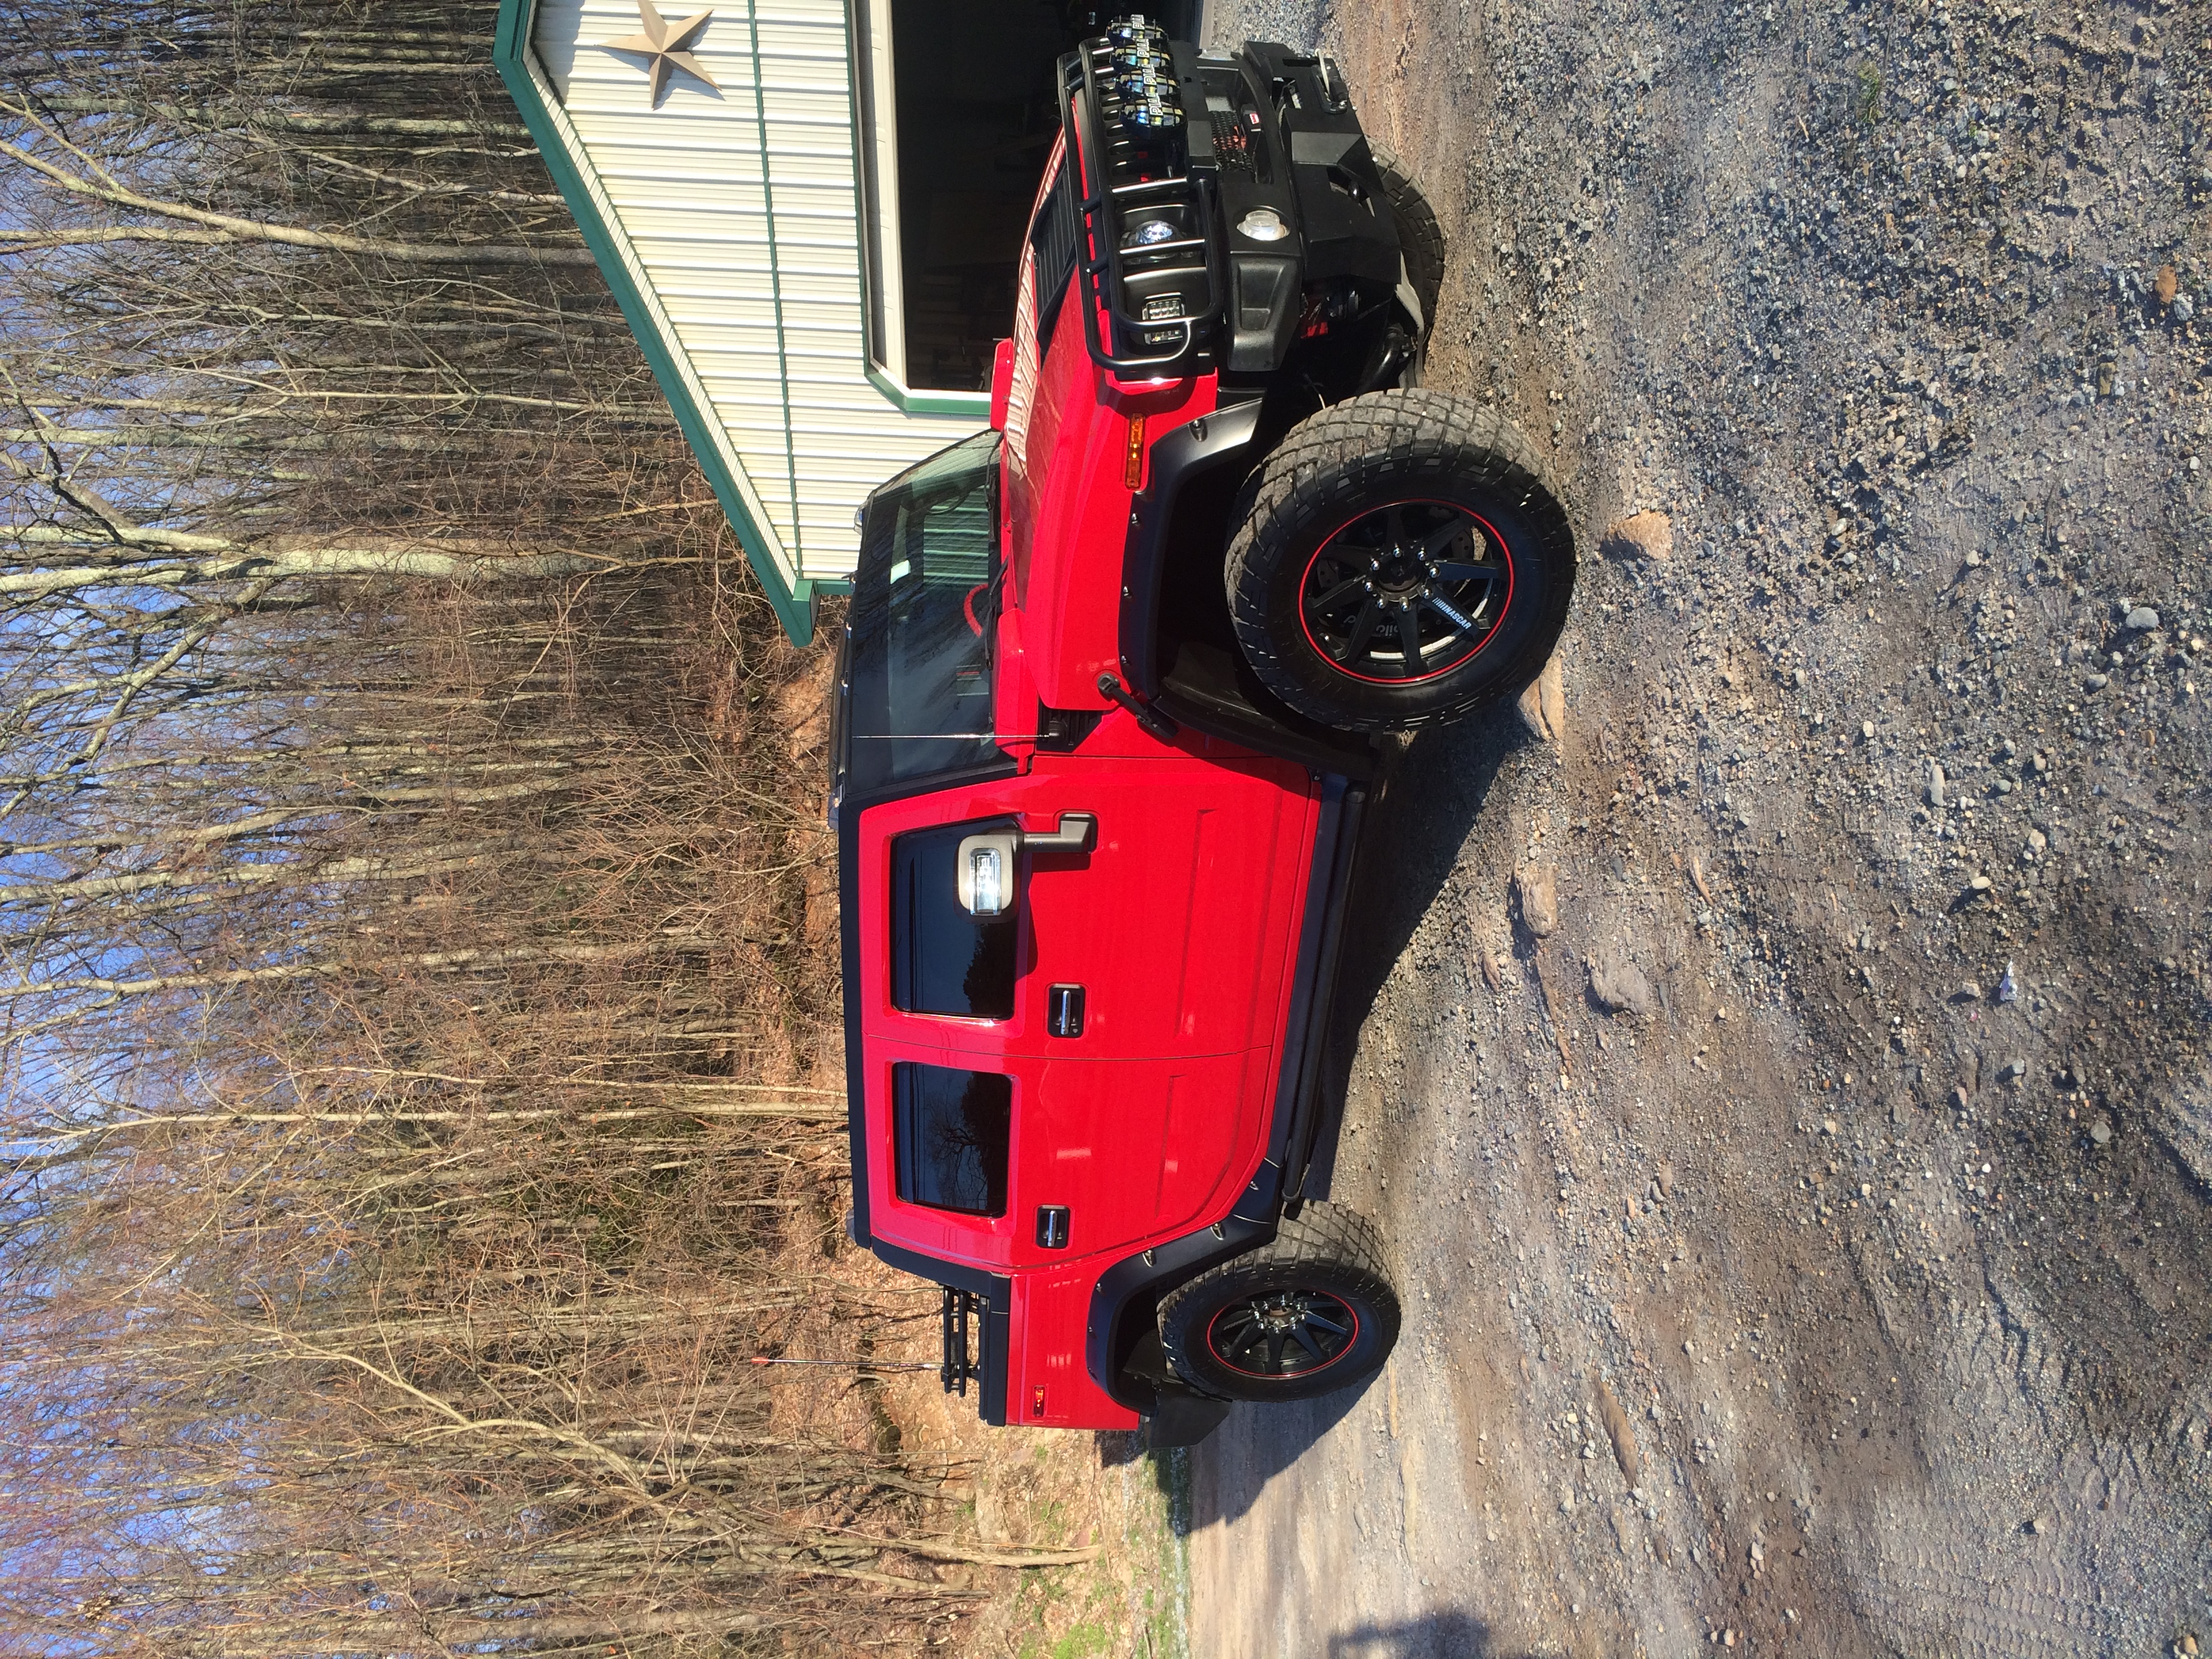 2005 hummer h2 sut for sale Hummer Forums Enthusiast Forum for